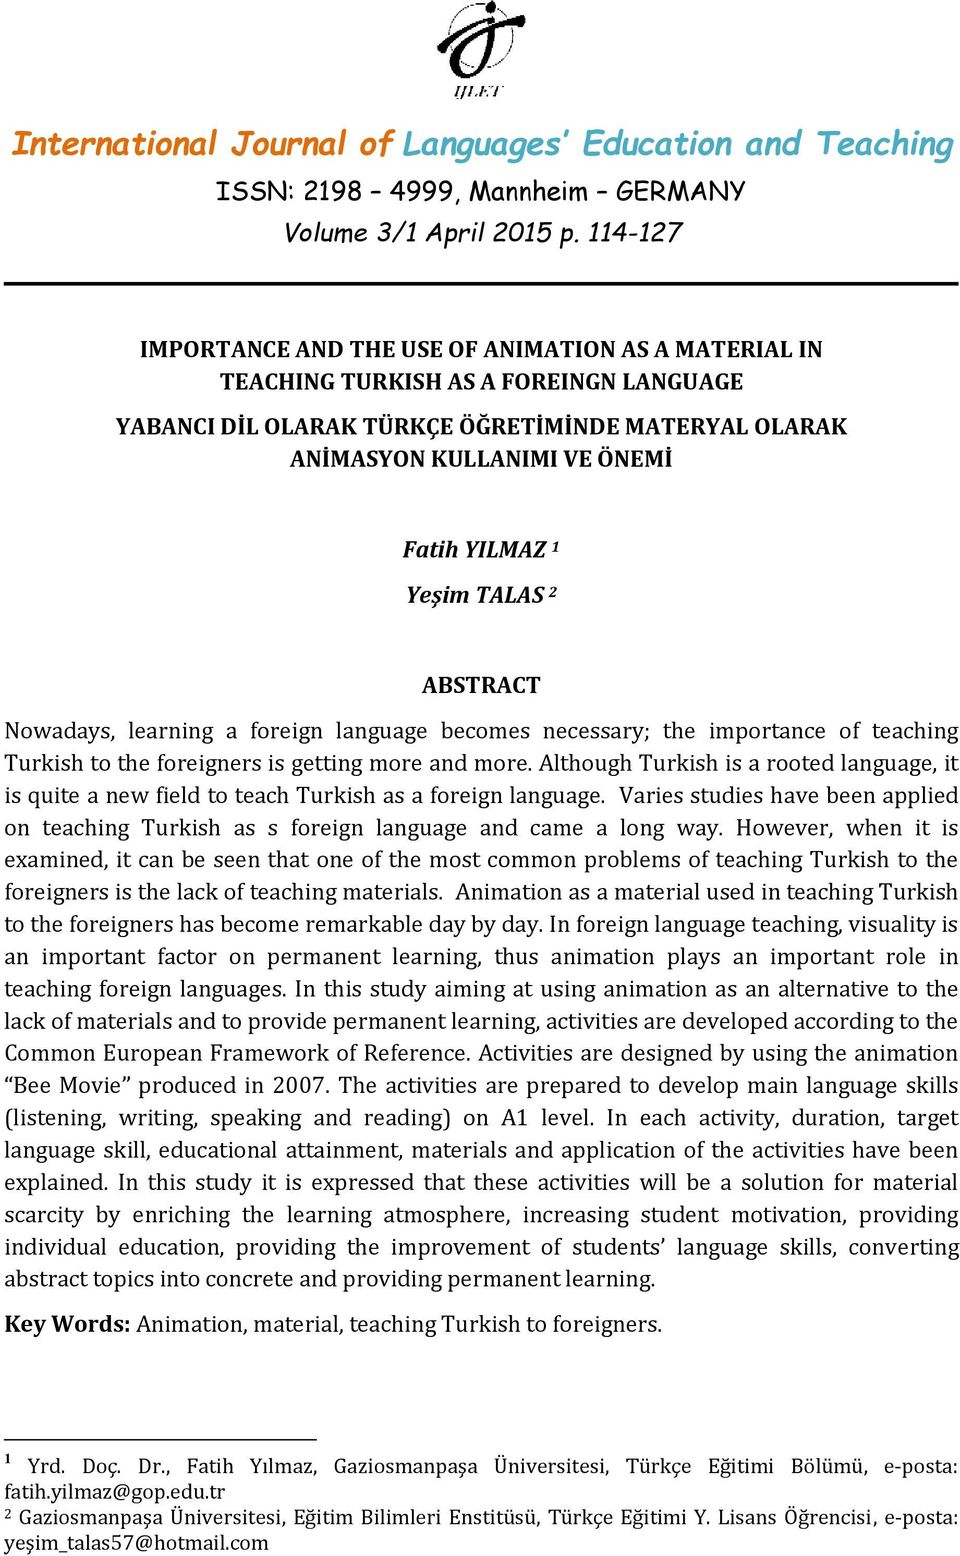 Although Turkish is a rooted language, it is quite a new field to teach Turkish as a foreign language. Varies studies have been applied on teaching Turkish as s foreign language and came a long way.